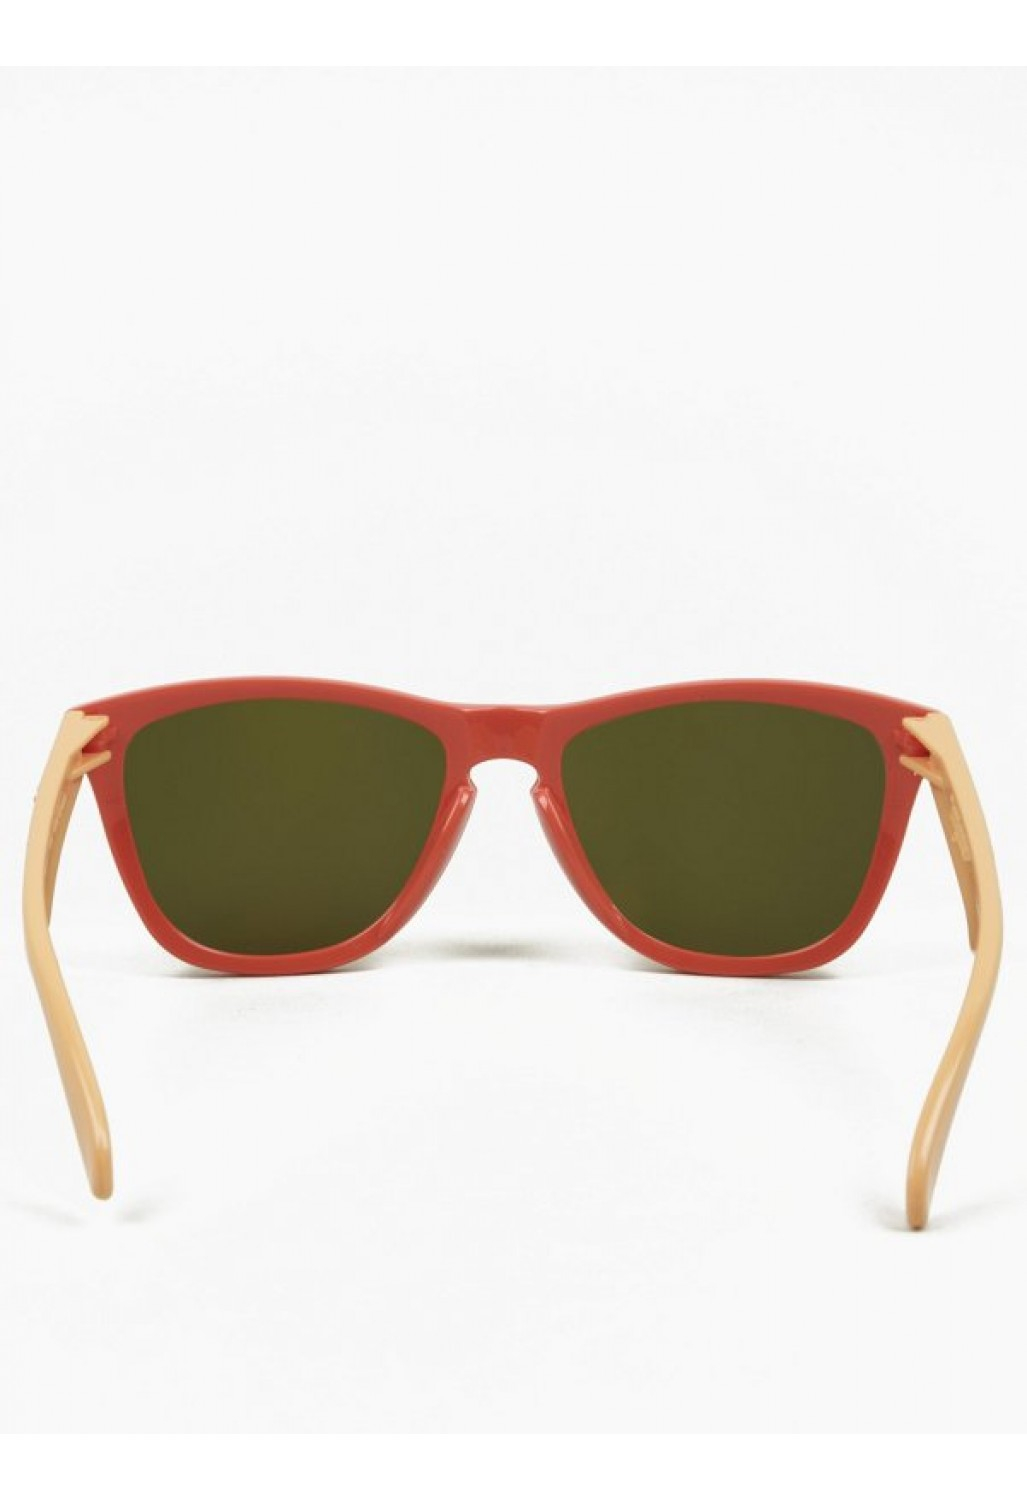 18379cd4530 Red And Yellow Oakley Sunglasses With Red Iridium Lens « Heritage Malta